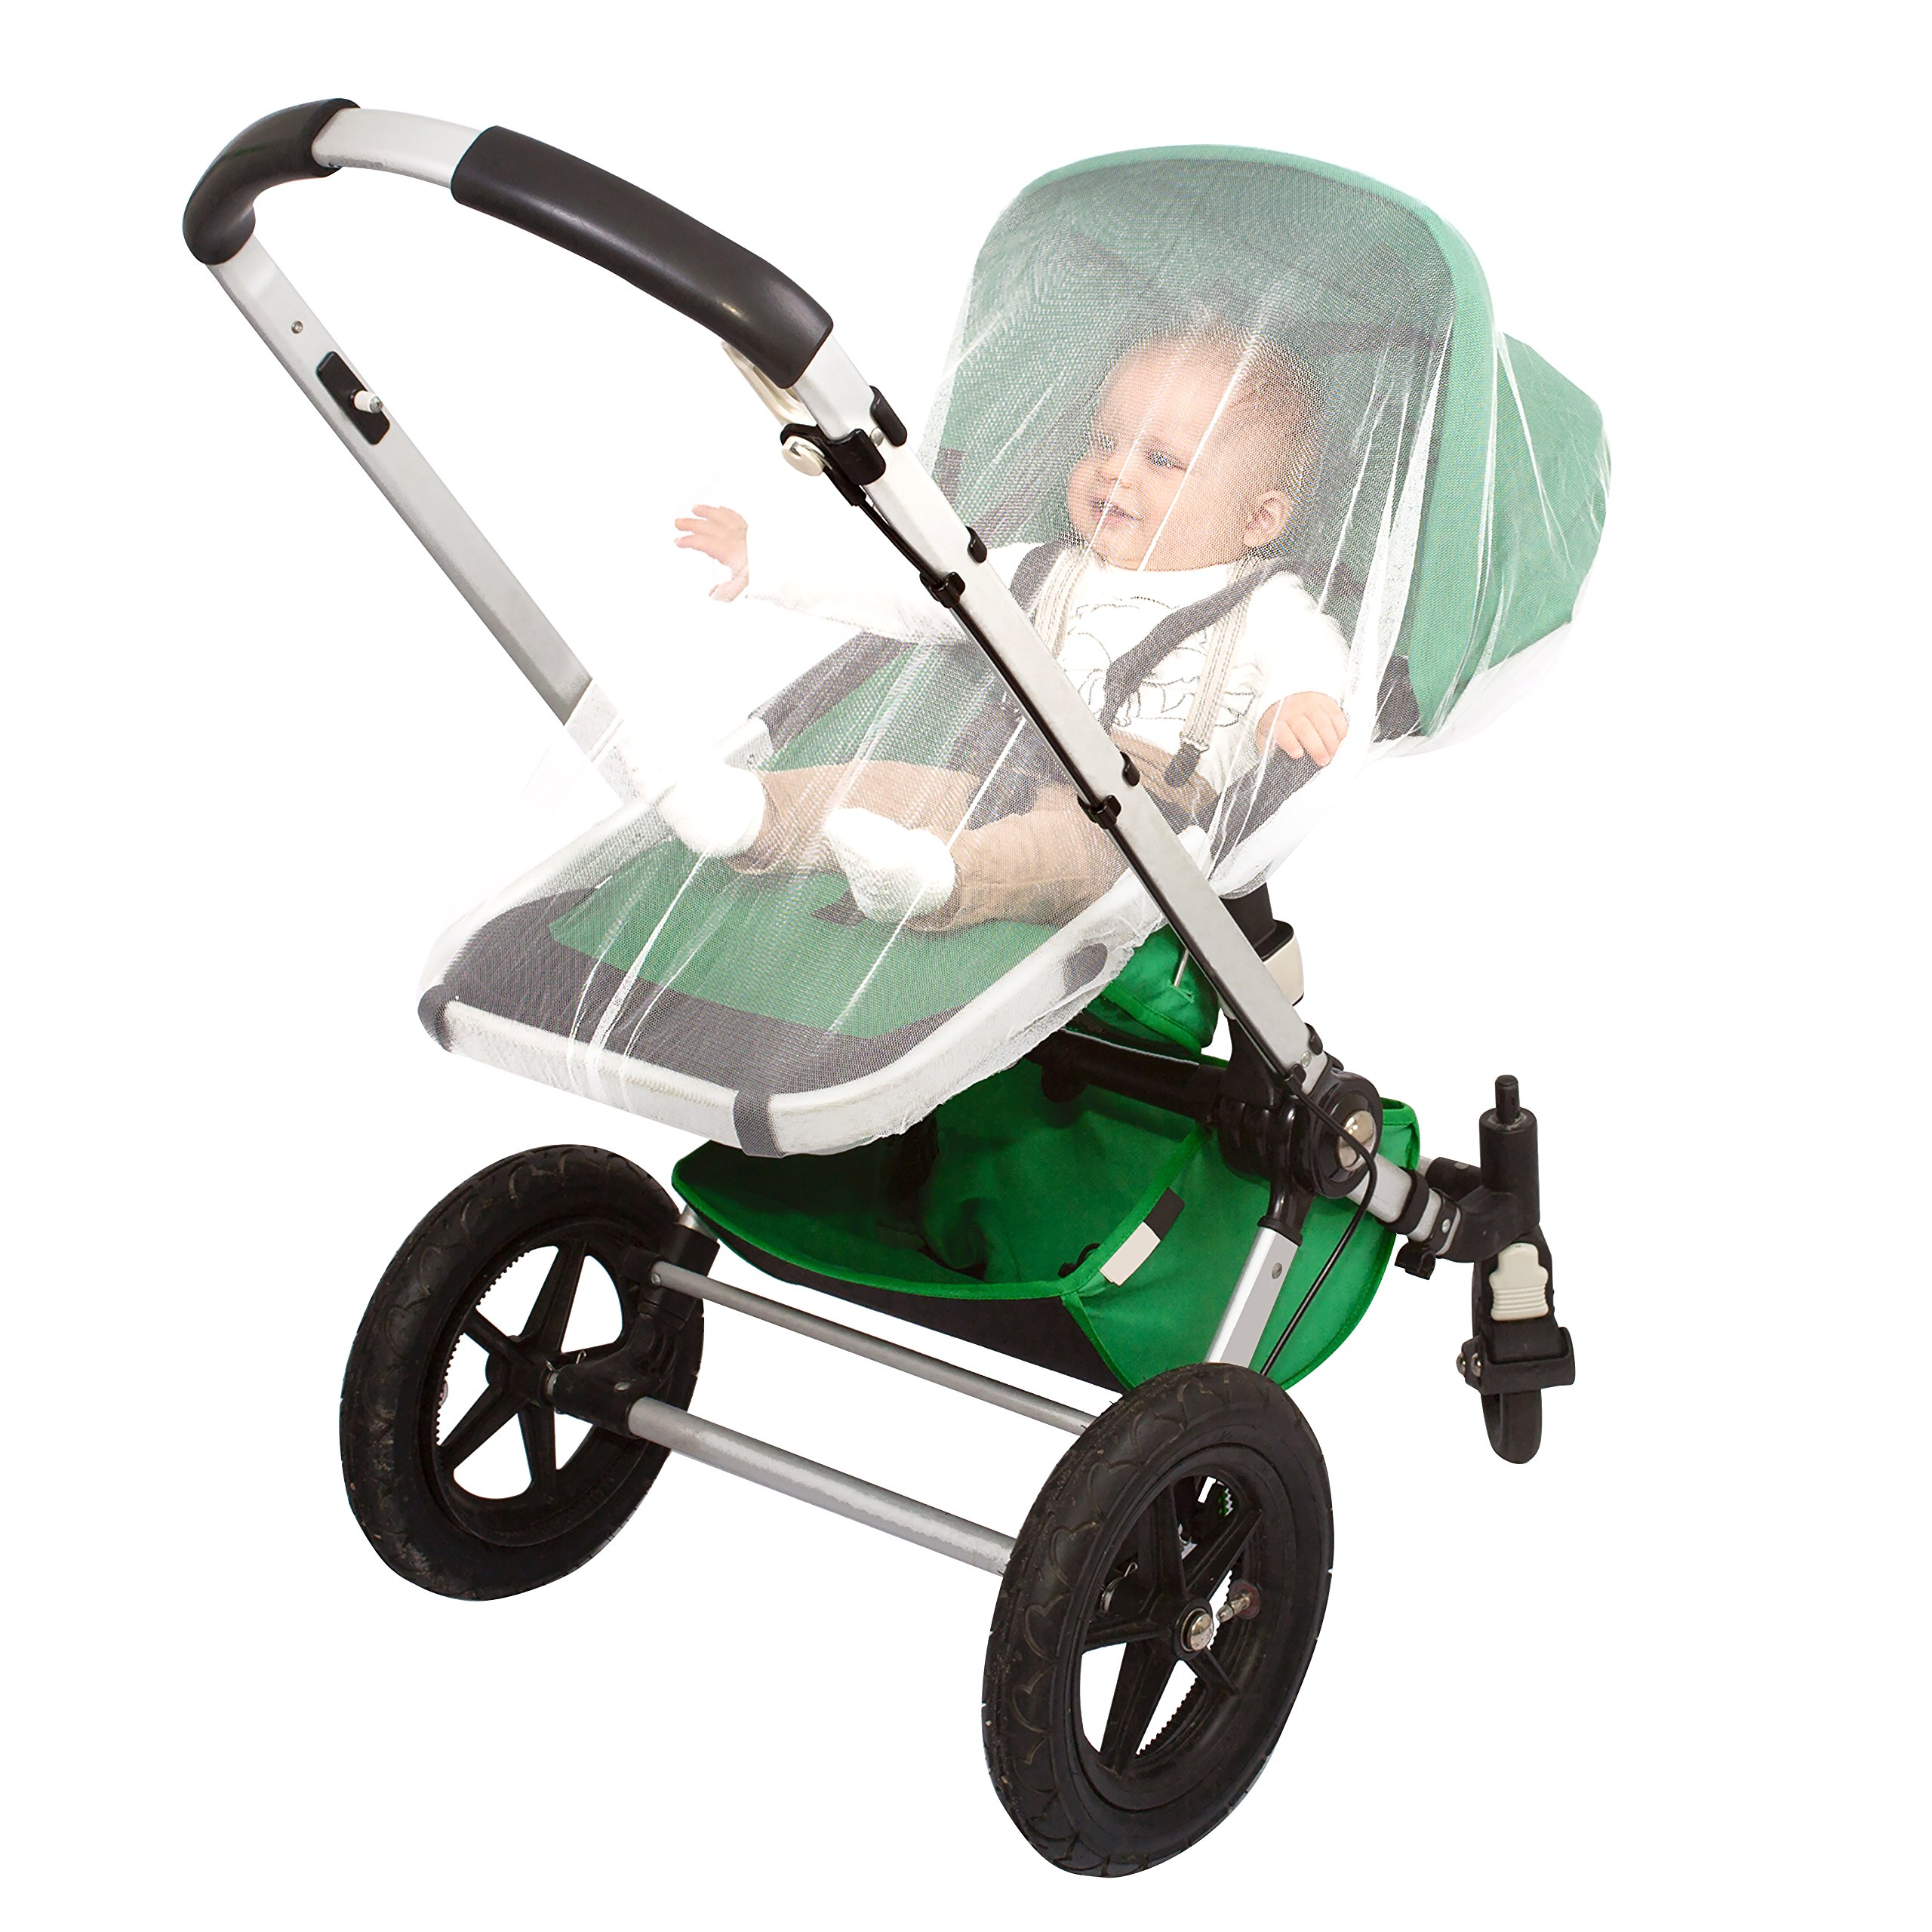 EVEN Naturals MOSQUITO NET for Stroller, Baby Carrier, Carriage, Infant Car Seat, Cradle, Soft Insect Shield Netting, Babies Fly Screen Protection, White Jogging Bug Net, Easy Installation, Carry Bag